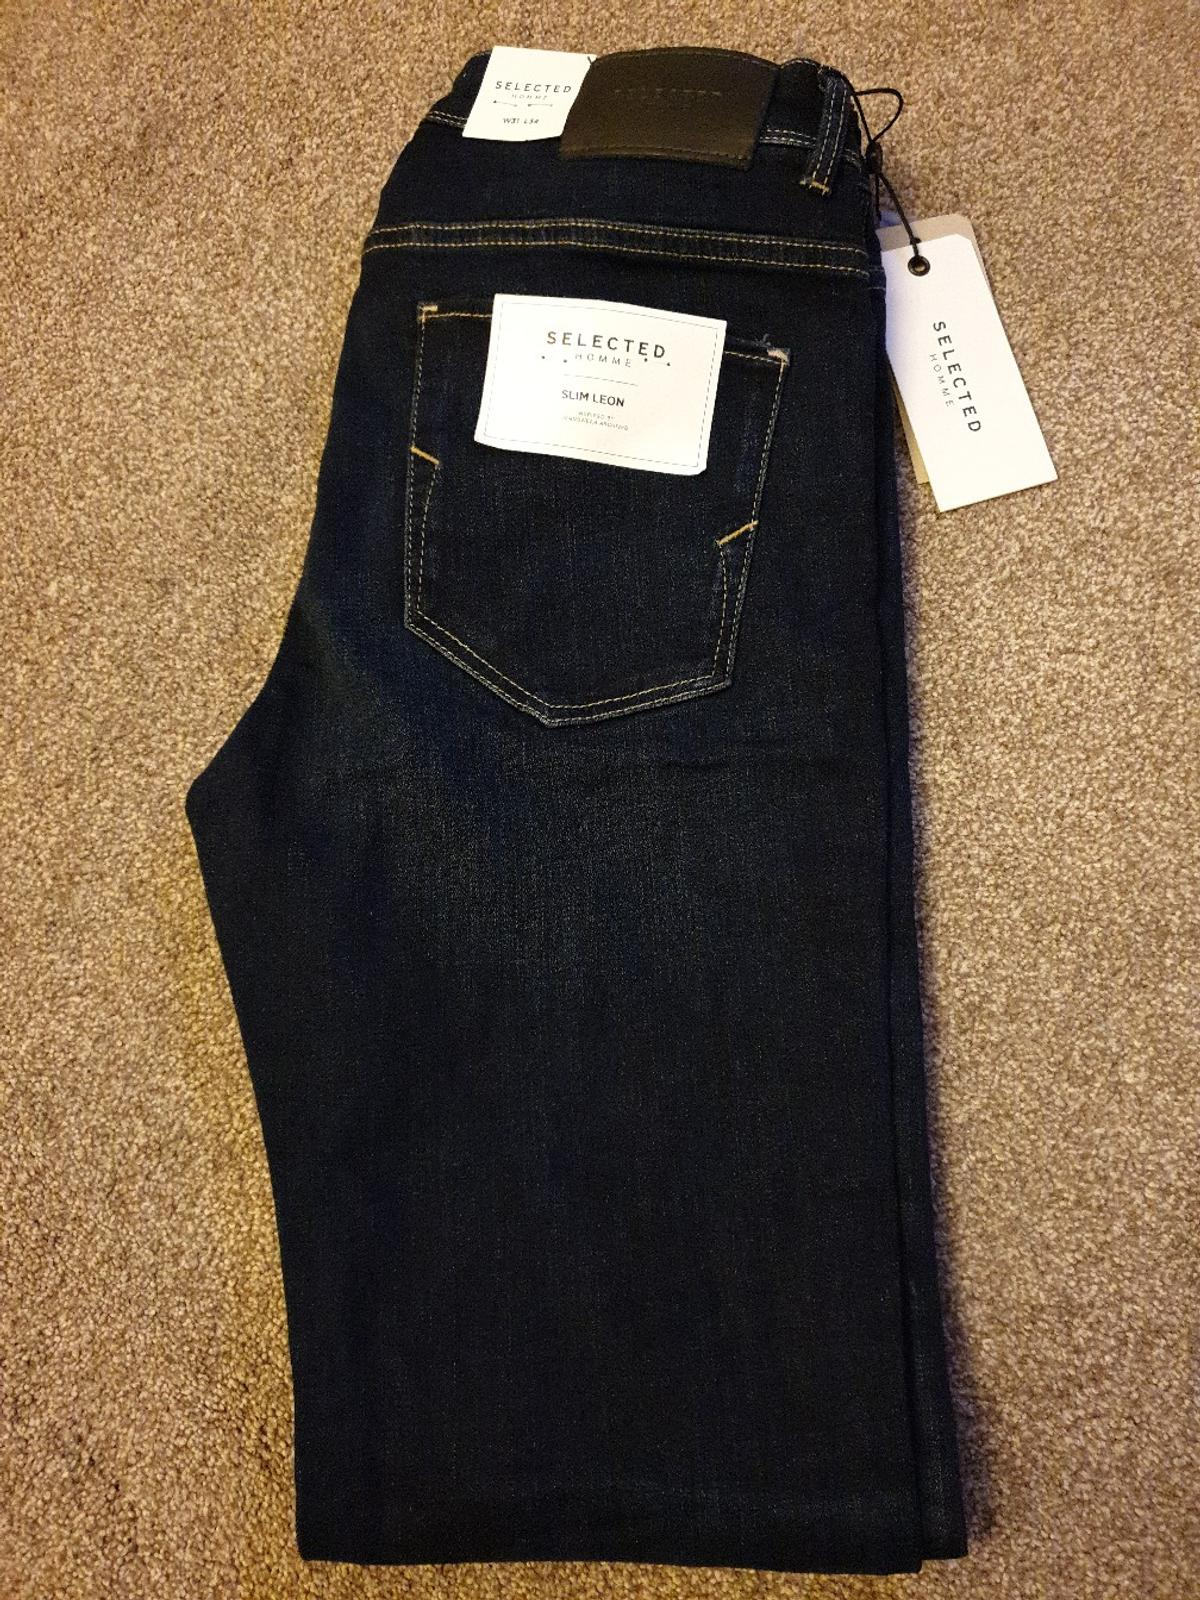 Selected Homme Leon Slim Jeans in Dark Blue Denim 31W/34L RRP £65. still selling for that today, grab a bargain Condition is New with tags. Dispatched with Royal Mail 1st Class.